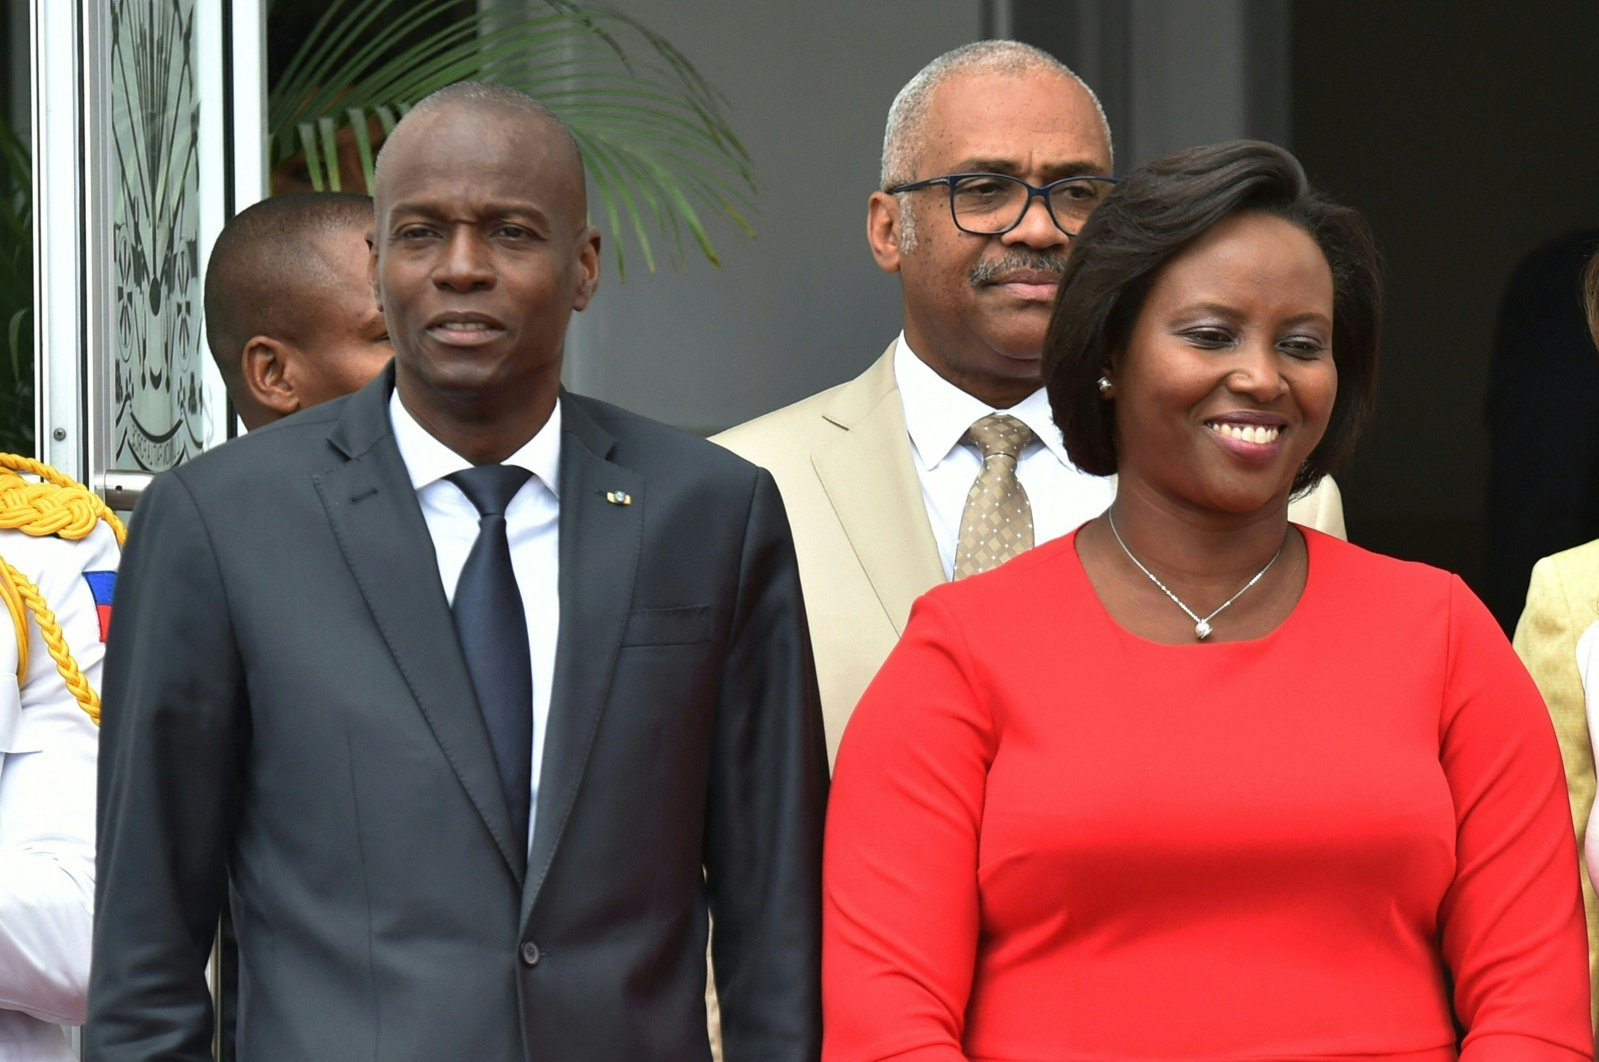 In this file photo taken on May 23, 2018, Haitian President Jovenel Moise (L) and Haitian First Lady Martine Moise are seen at the National Palace in Port-au-Prince, Haiti. (AFP Photo)